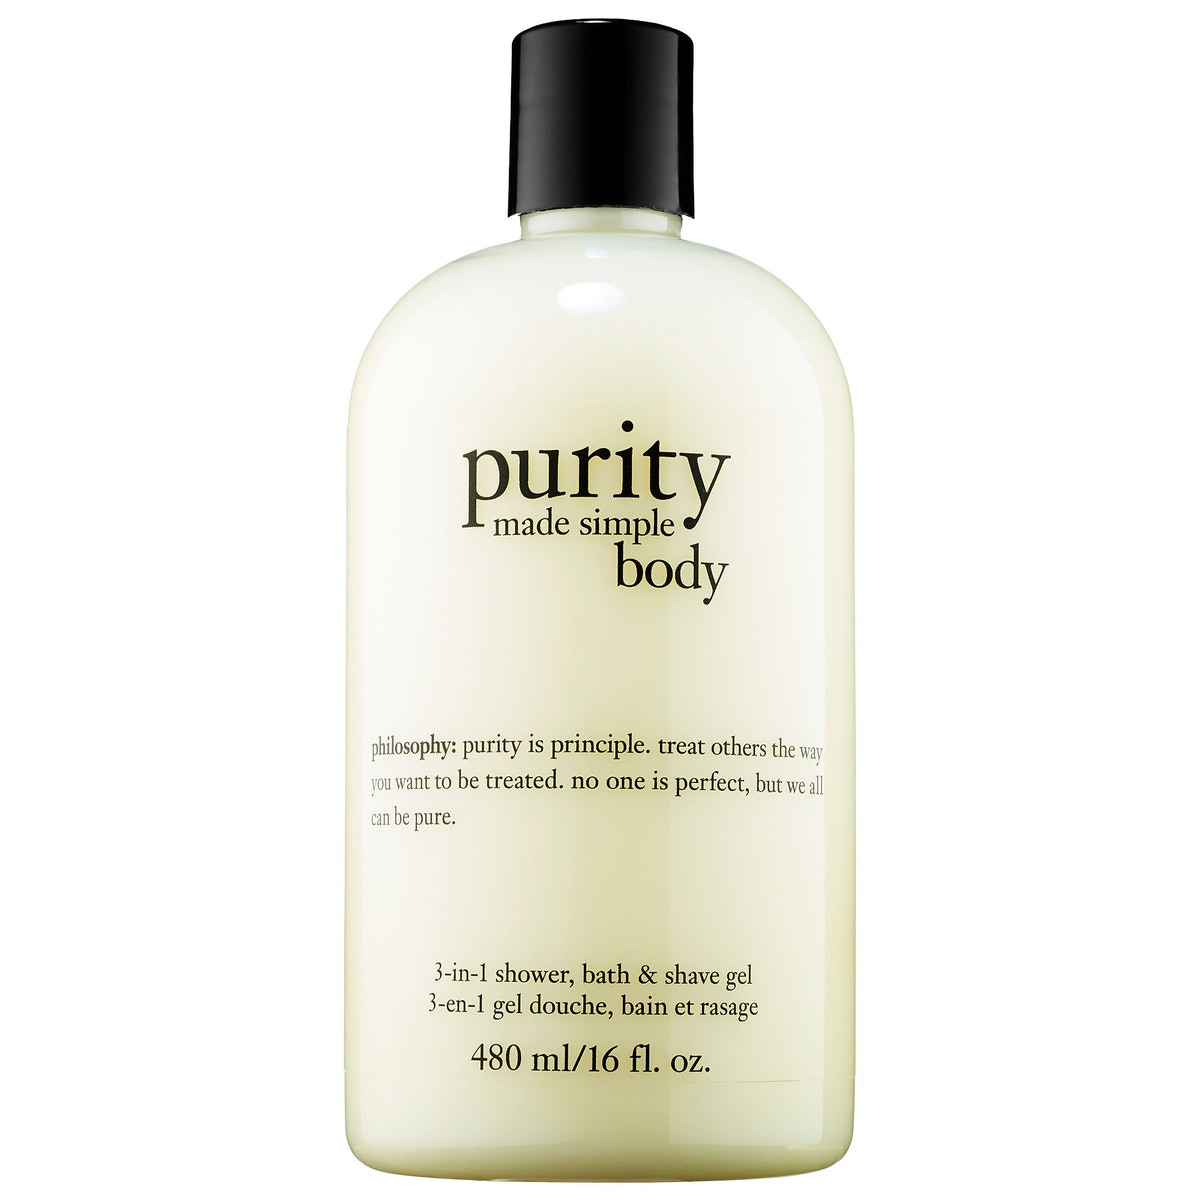 Purity 3-in-1 Shower, Bath & Shave Gel